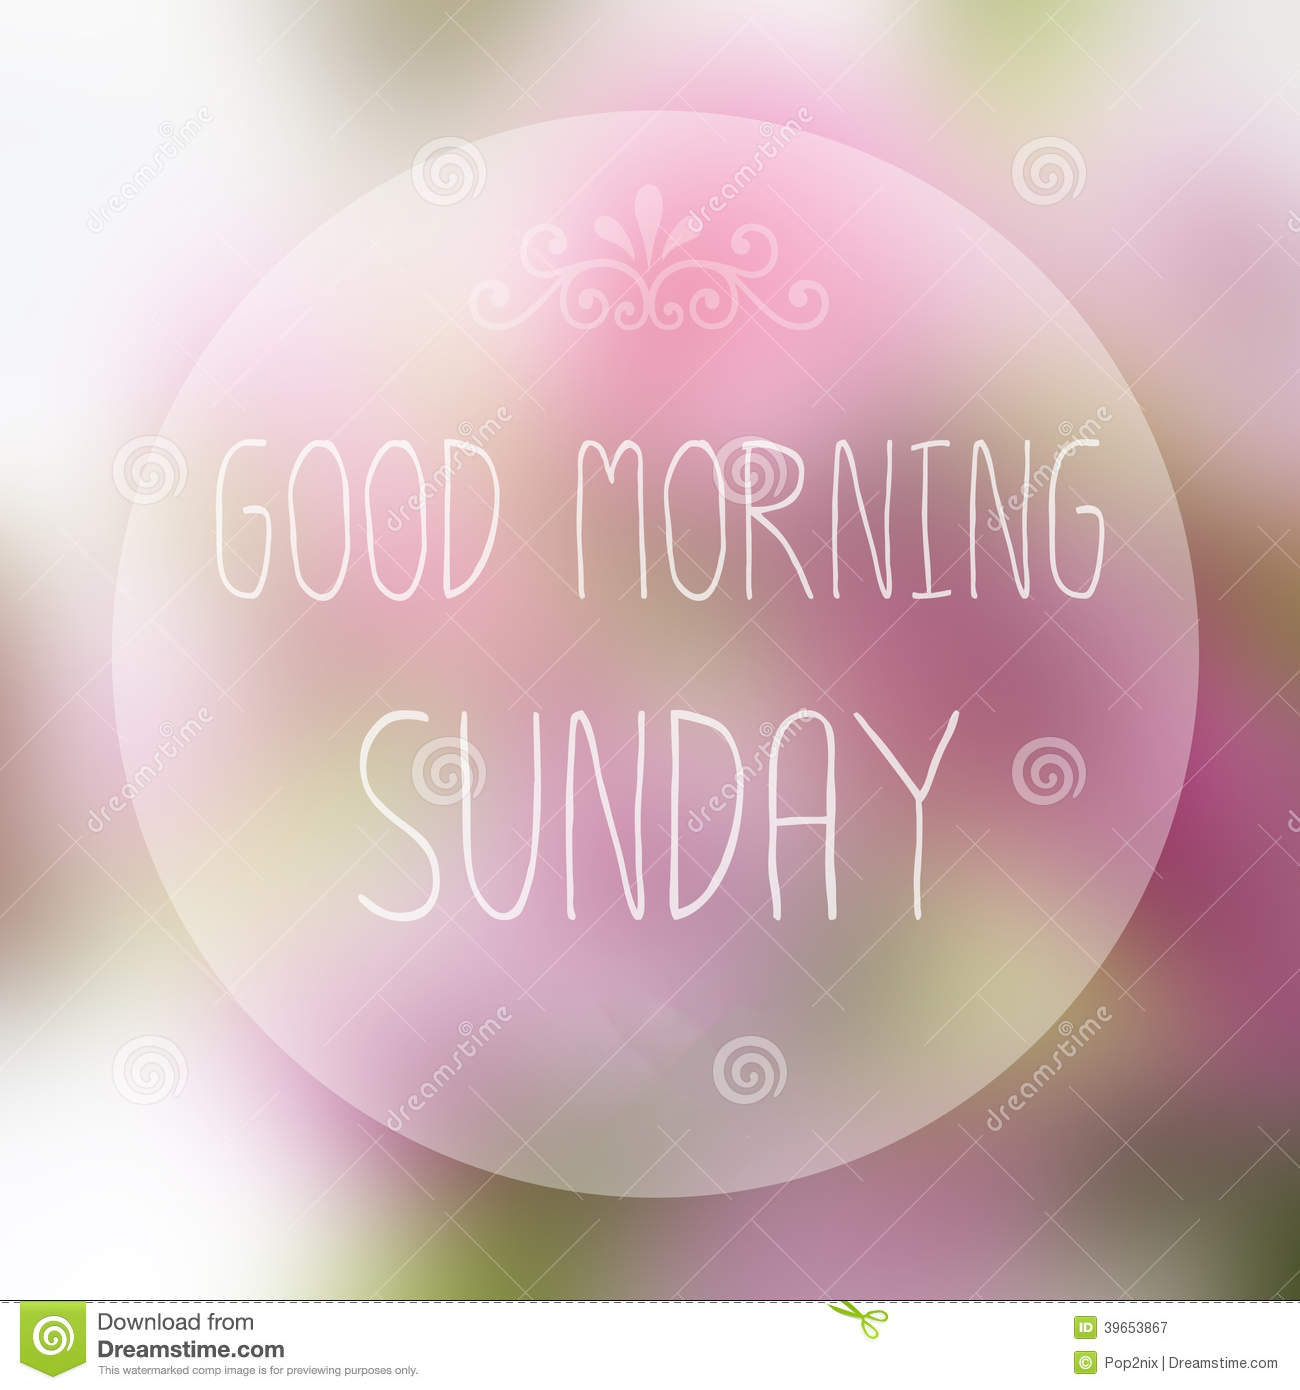 Good Morning Sunday Stock Photo - Image: 39653867